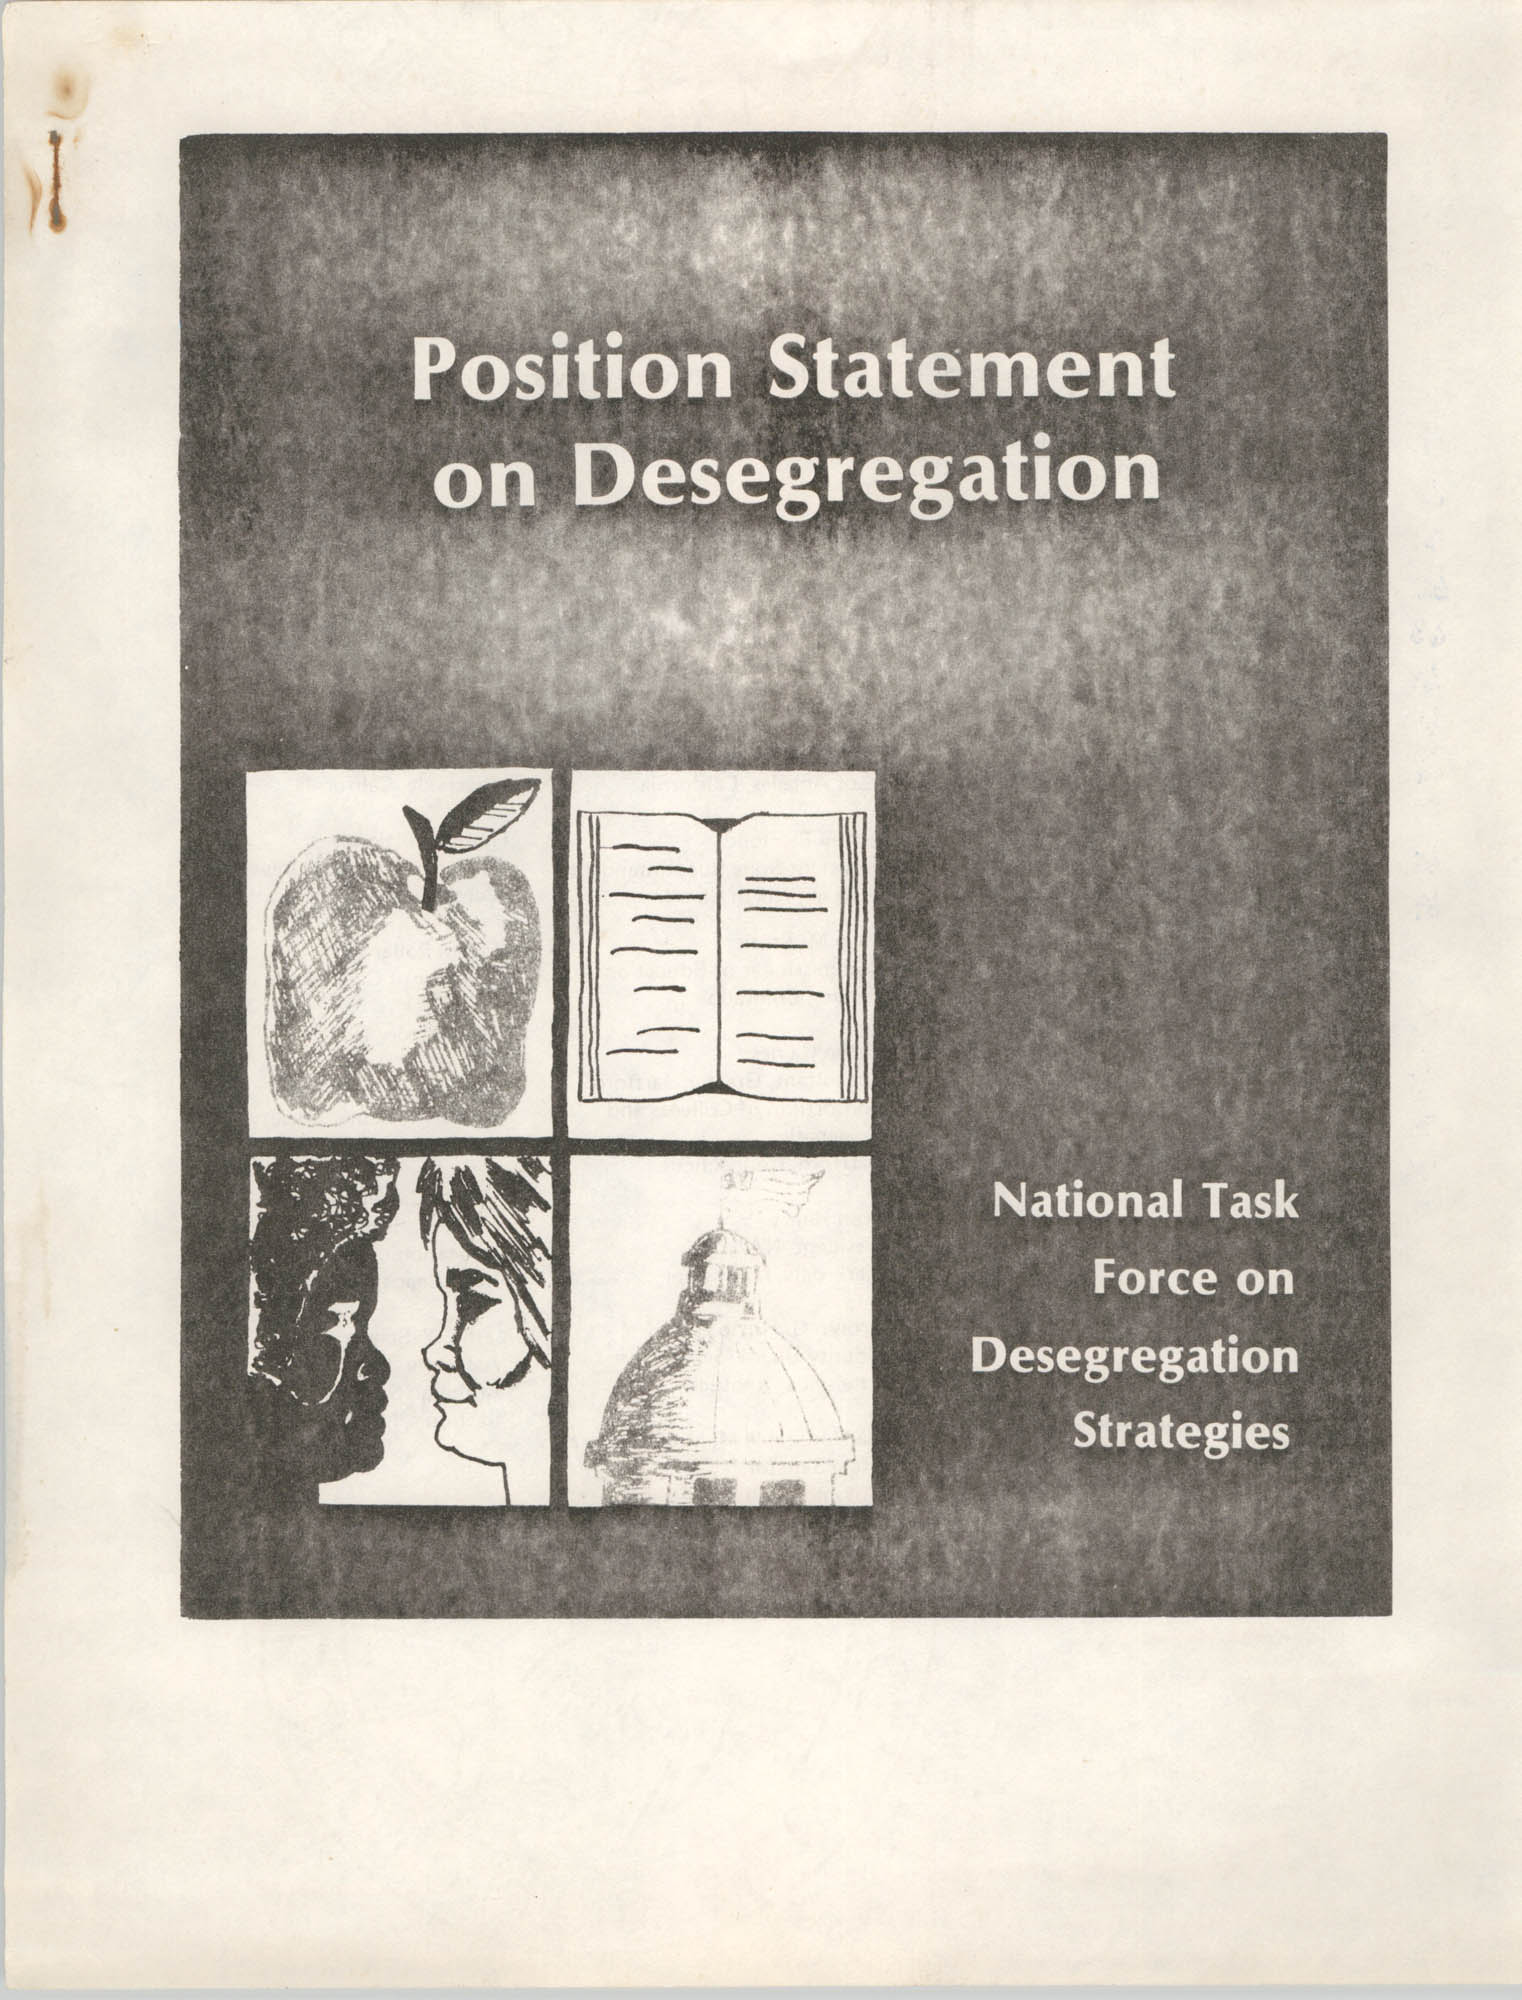 Position Statement on Desegregation, National Task Force on Desegregation Strategies